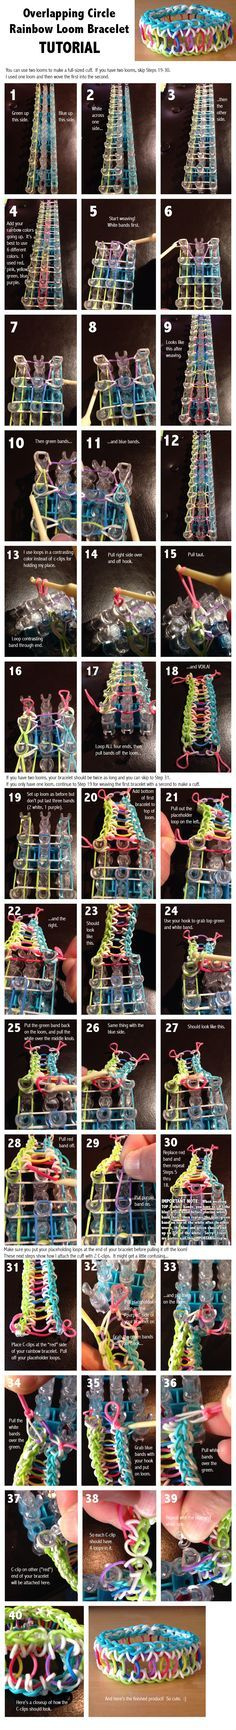 387 best arts and crafts images on pinterest creative crafts diy here is the tutorial for making the rainbow patterned overlapping circle rainbow loom bracelet please fandeluxe